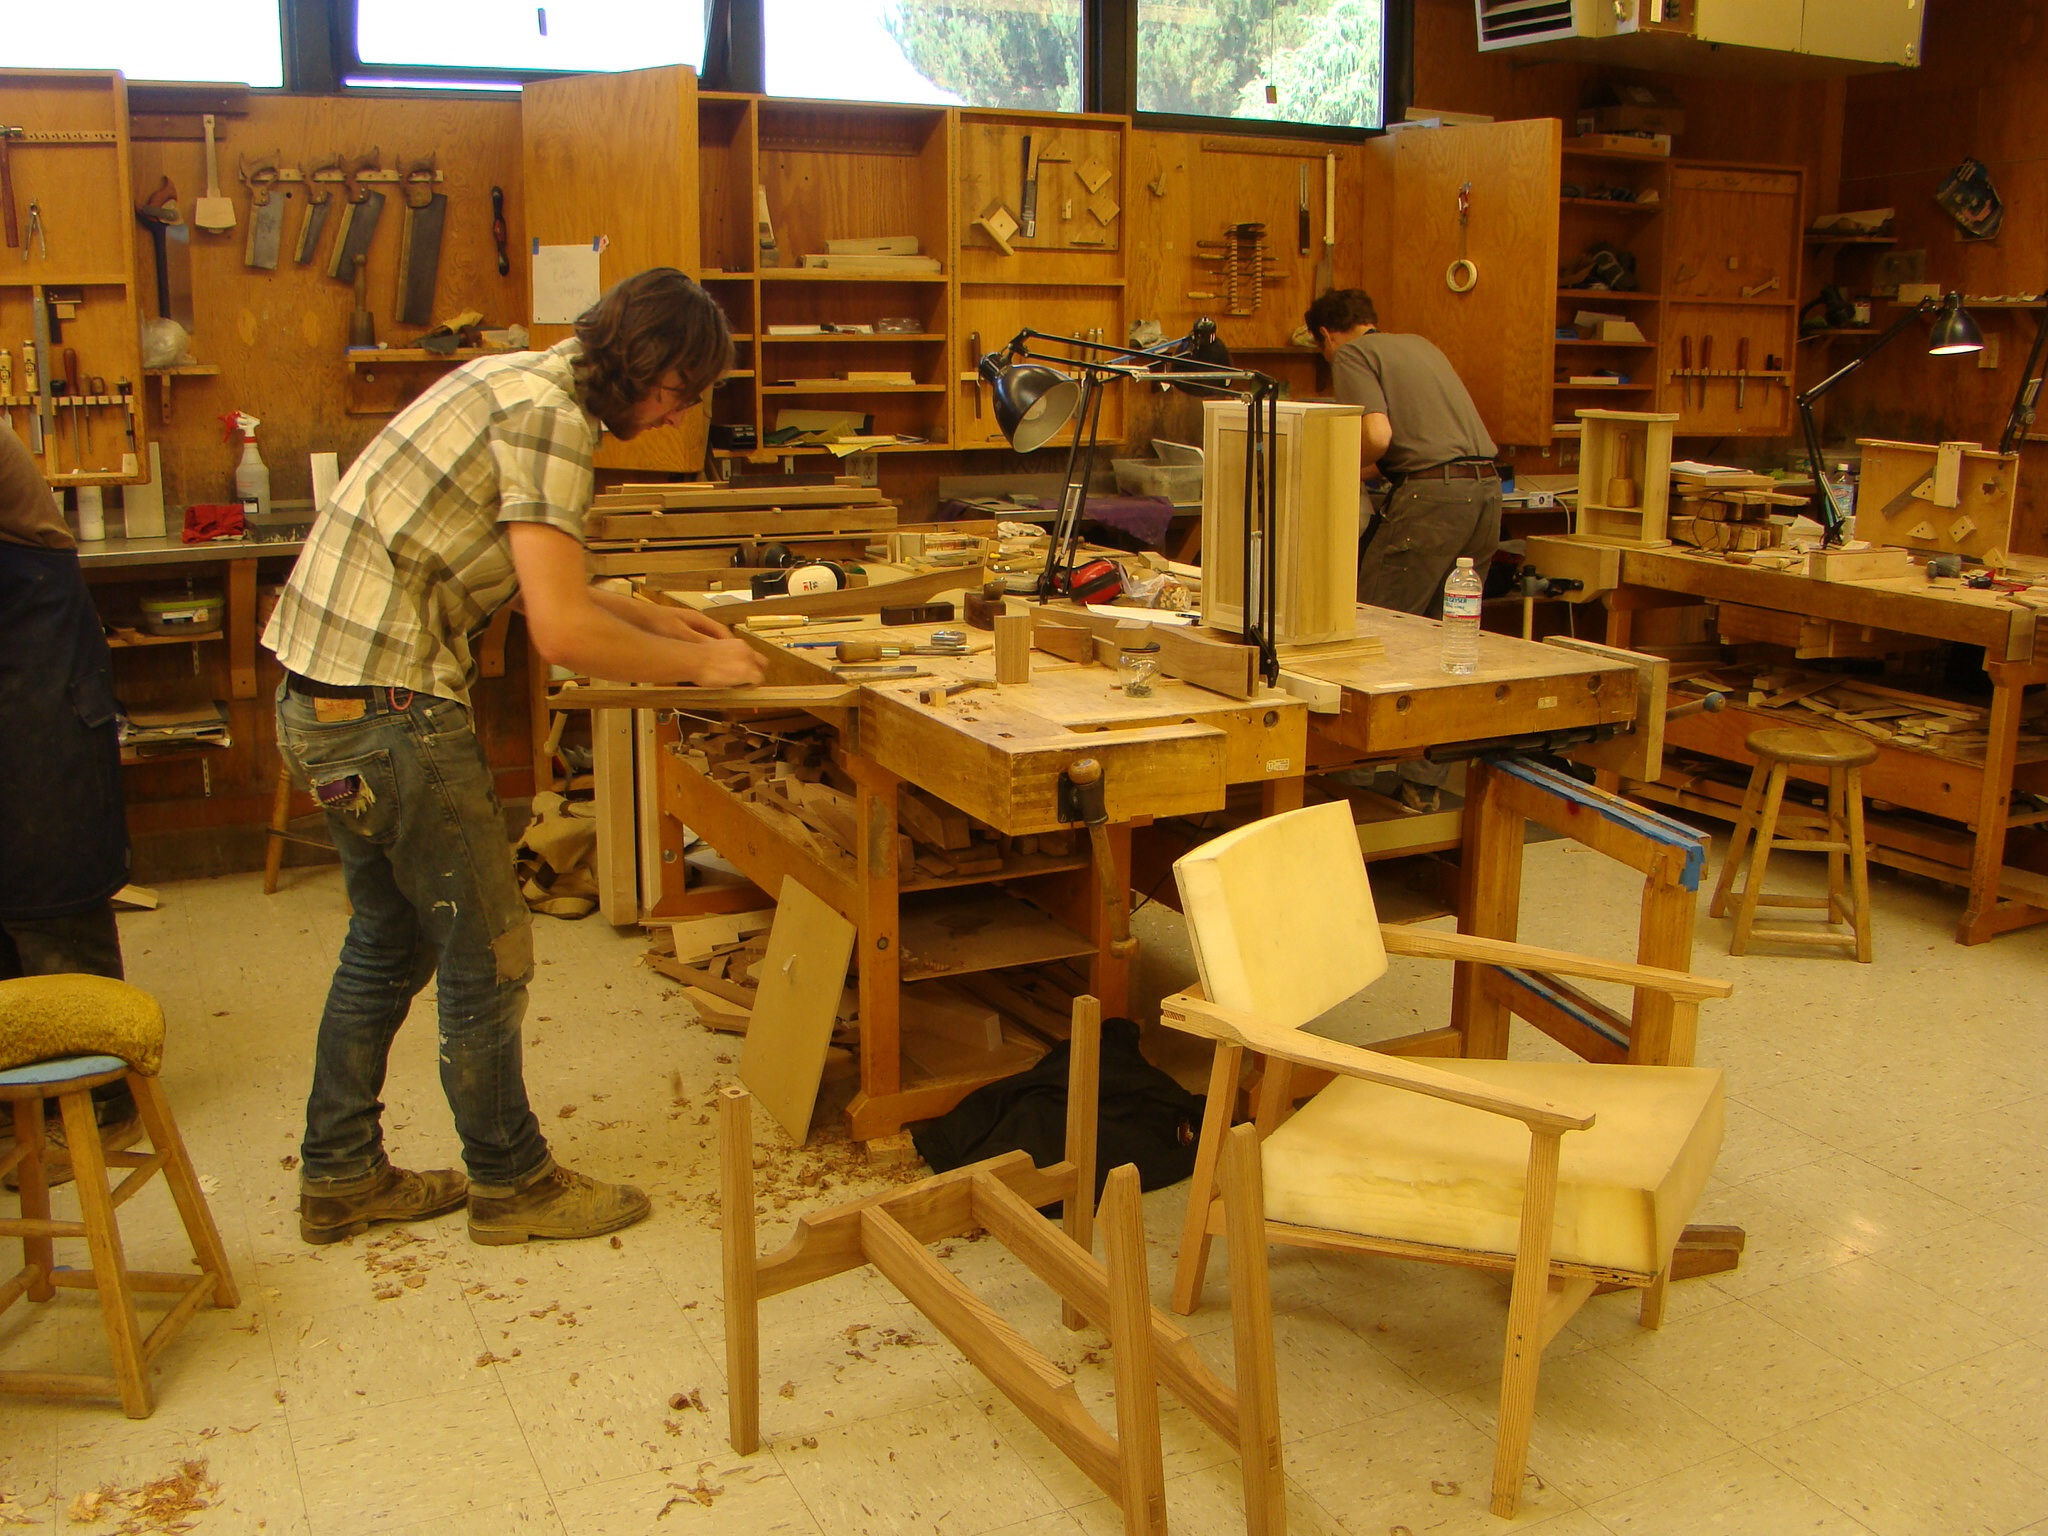 Richard Preece Furniture Maker London Based Furniture Maker